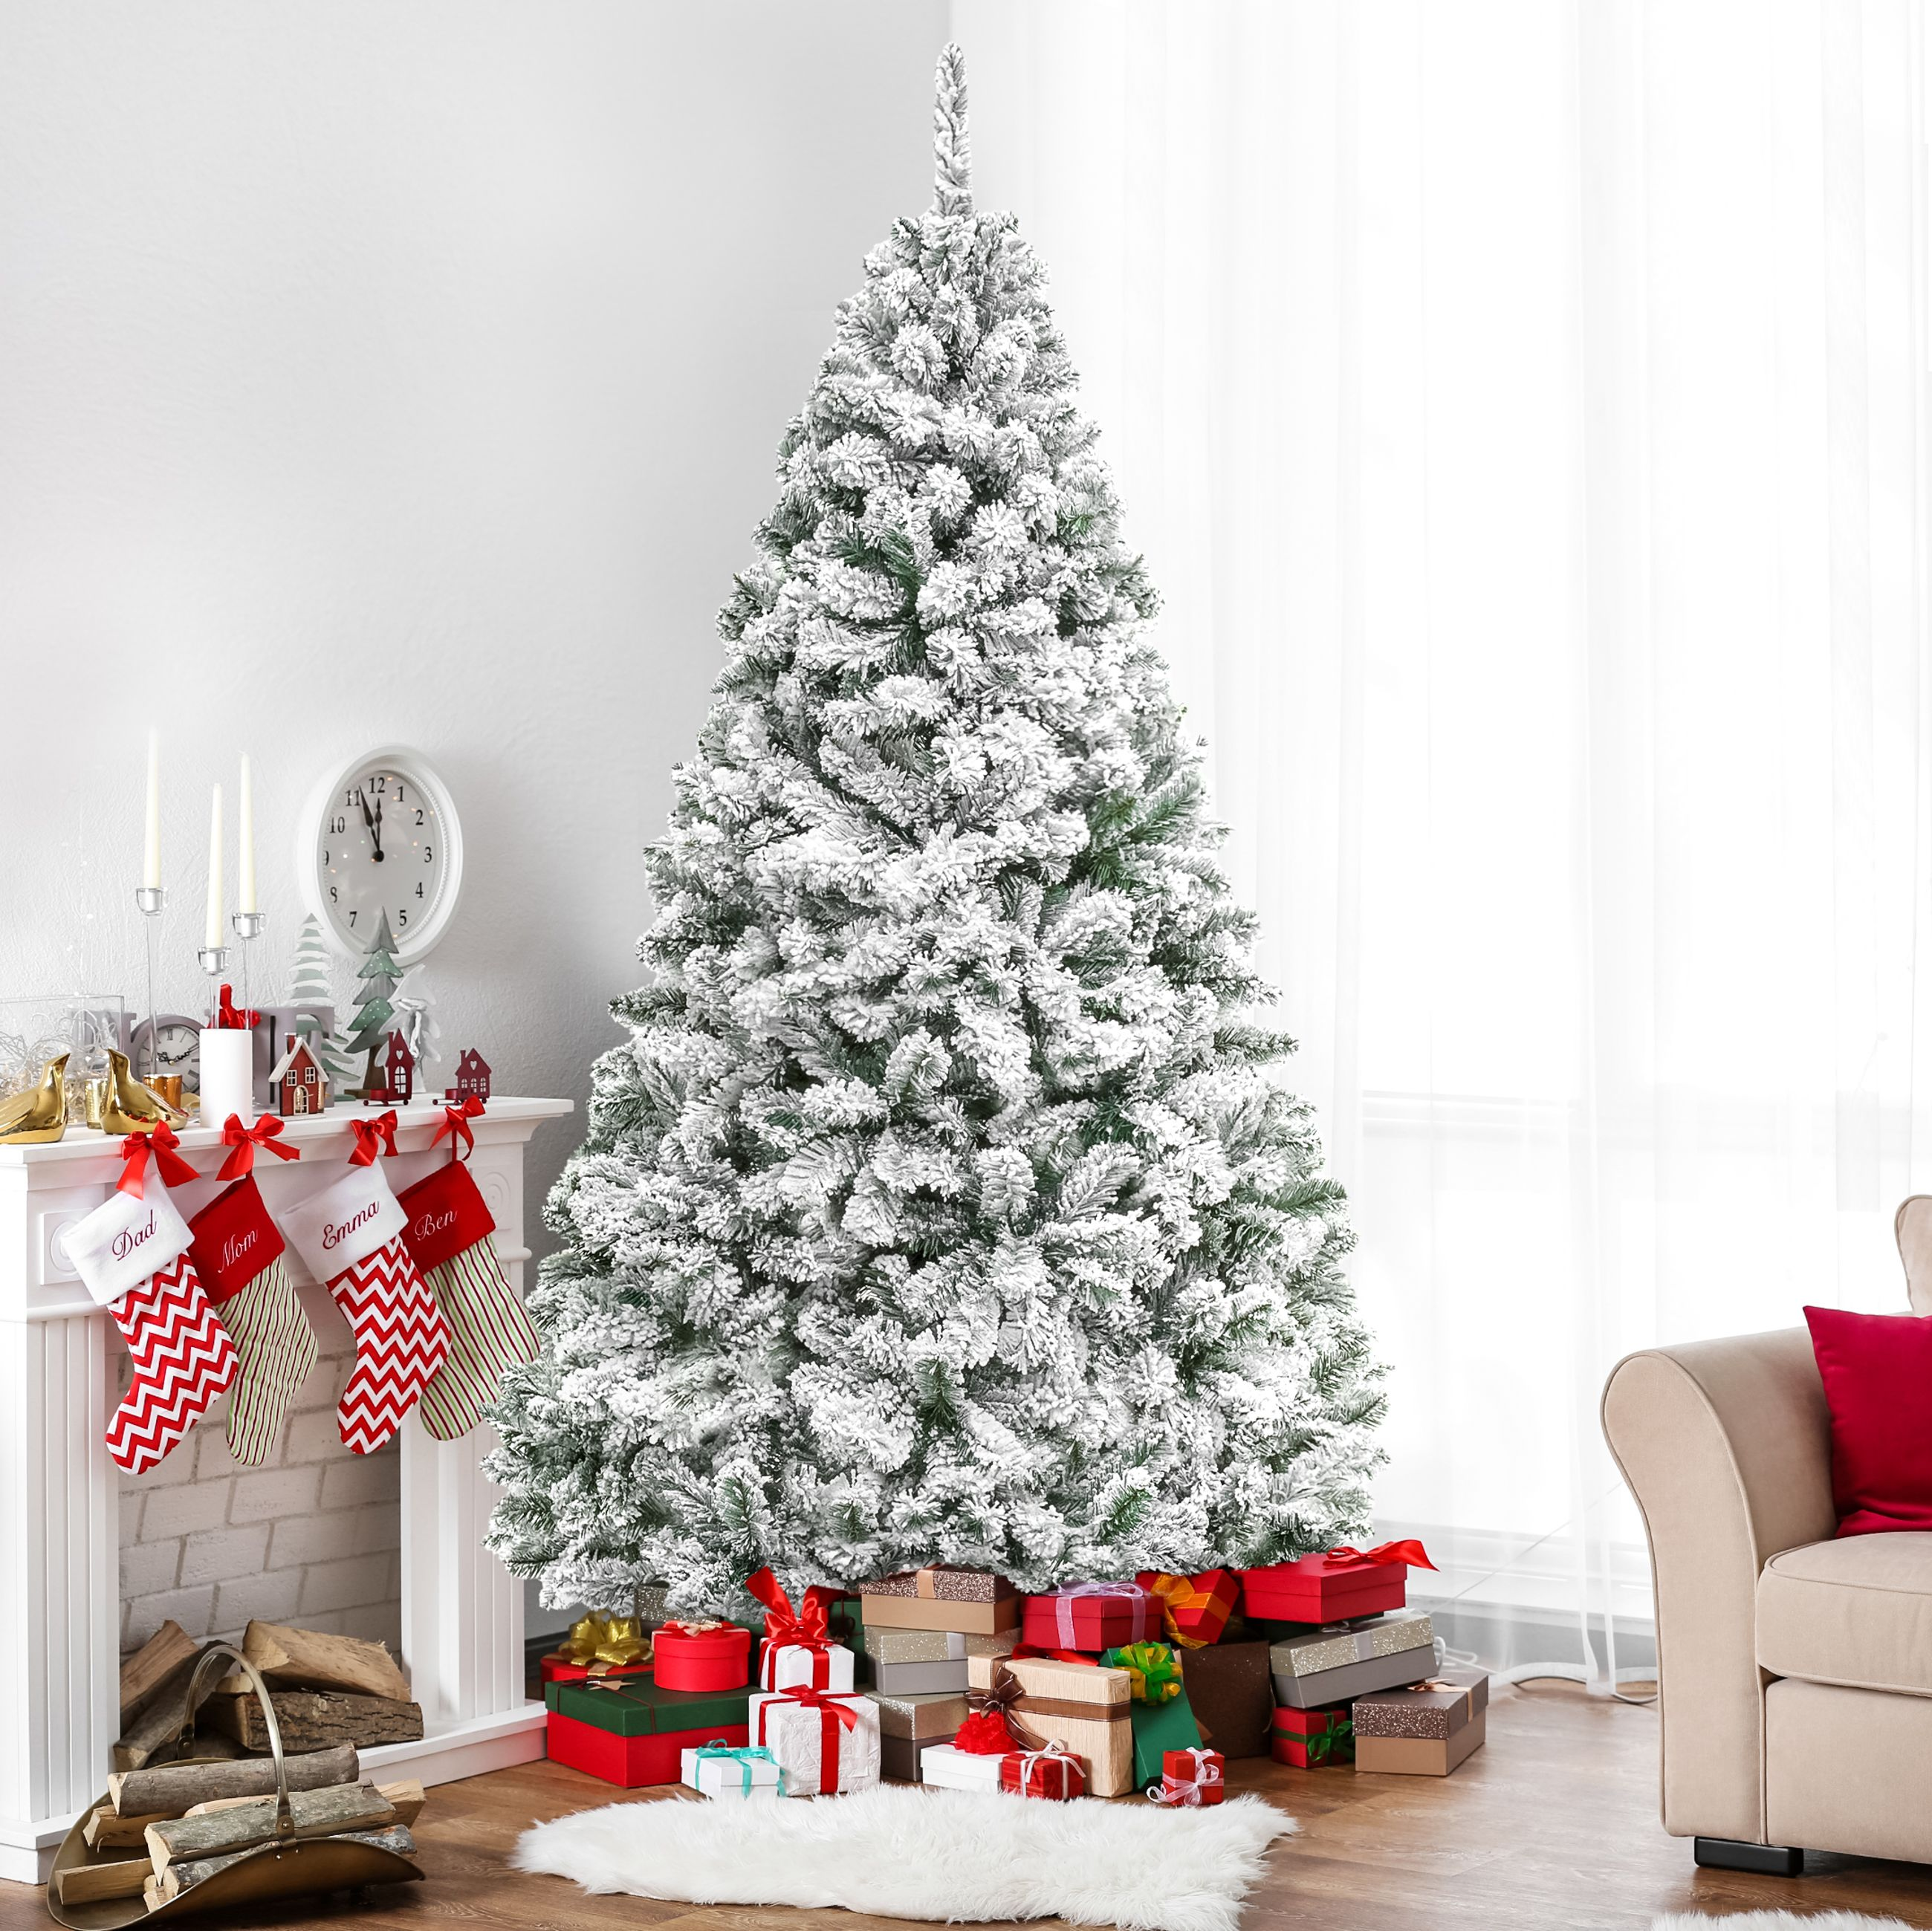 Now Is Actually the Best Time to Buy an Artificial Christmas Tree